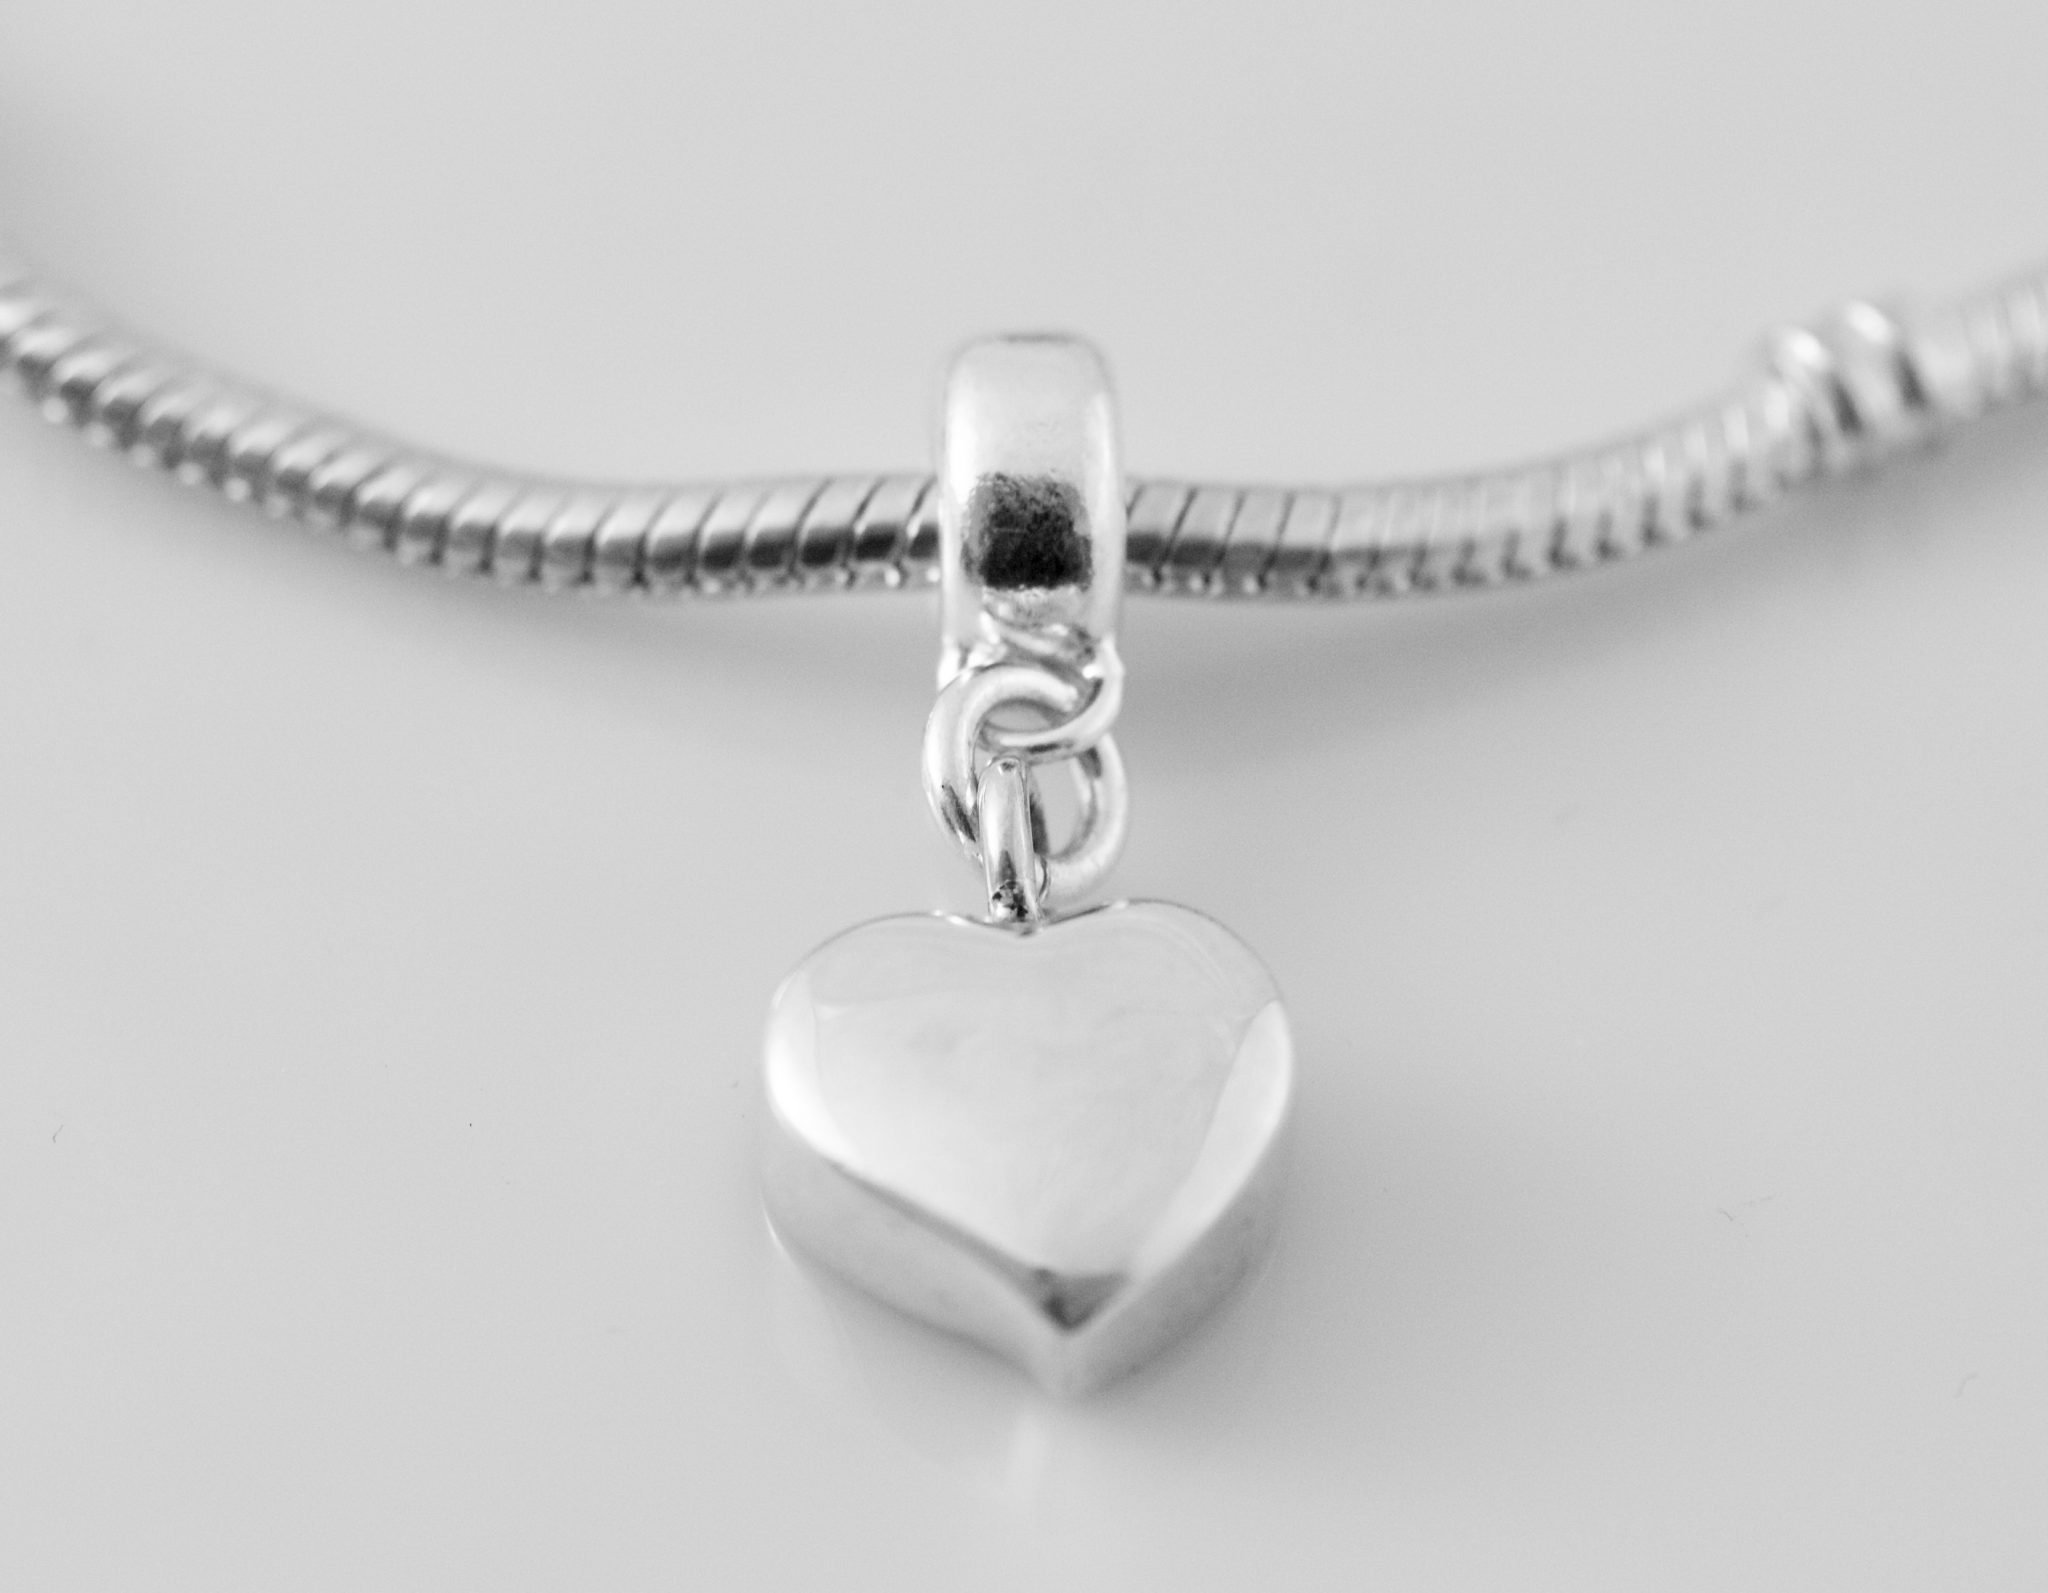 Silver pandora charm for your loved ones ashes to fit your bracelet silver pandora charm ashes into jewellery uk aloadofball Gallery